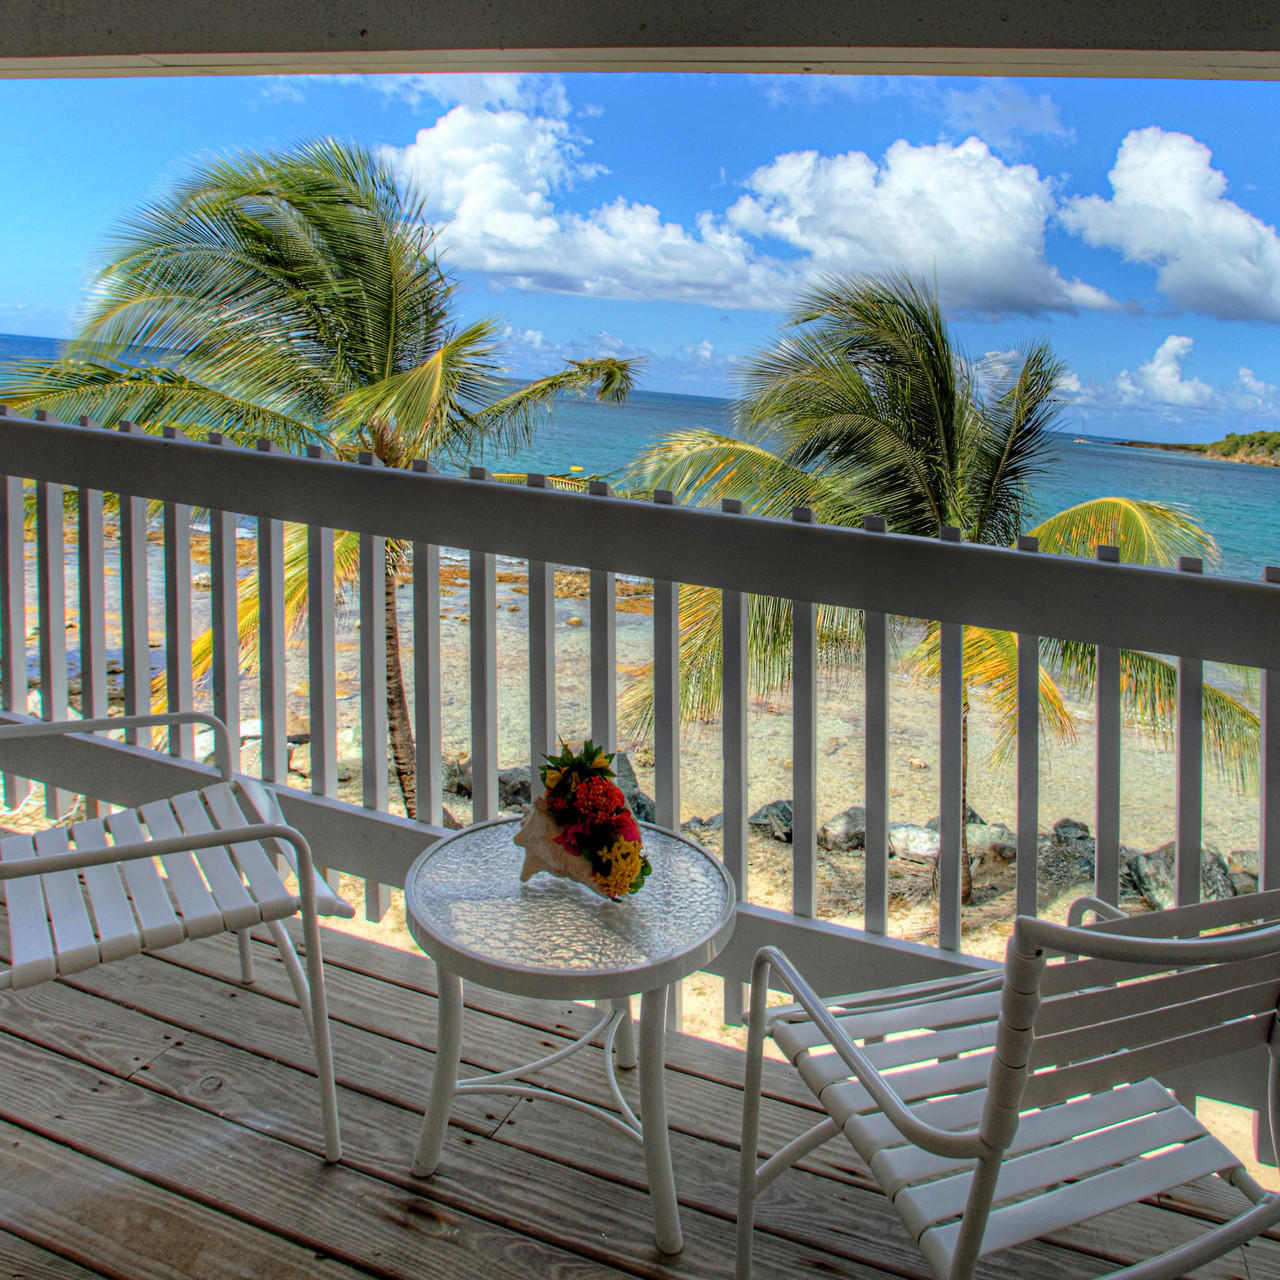 Room balcony with the view of  beach at Tamarind Reef Resort